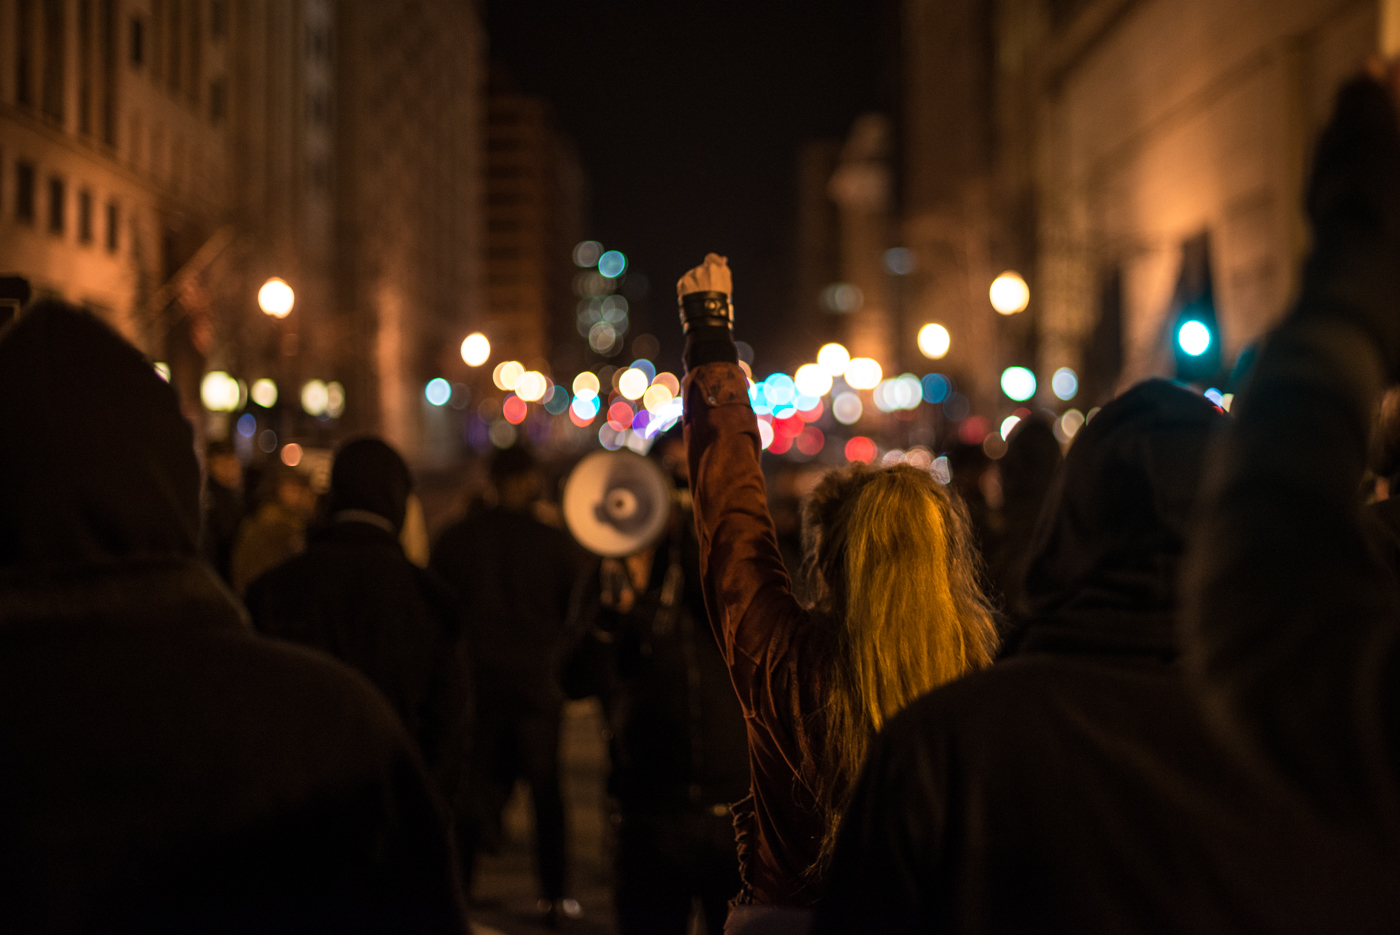 A woman raises her fist during a march in the streets of downtown Washington, D.C.